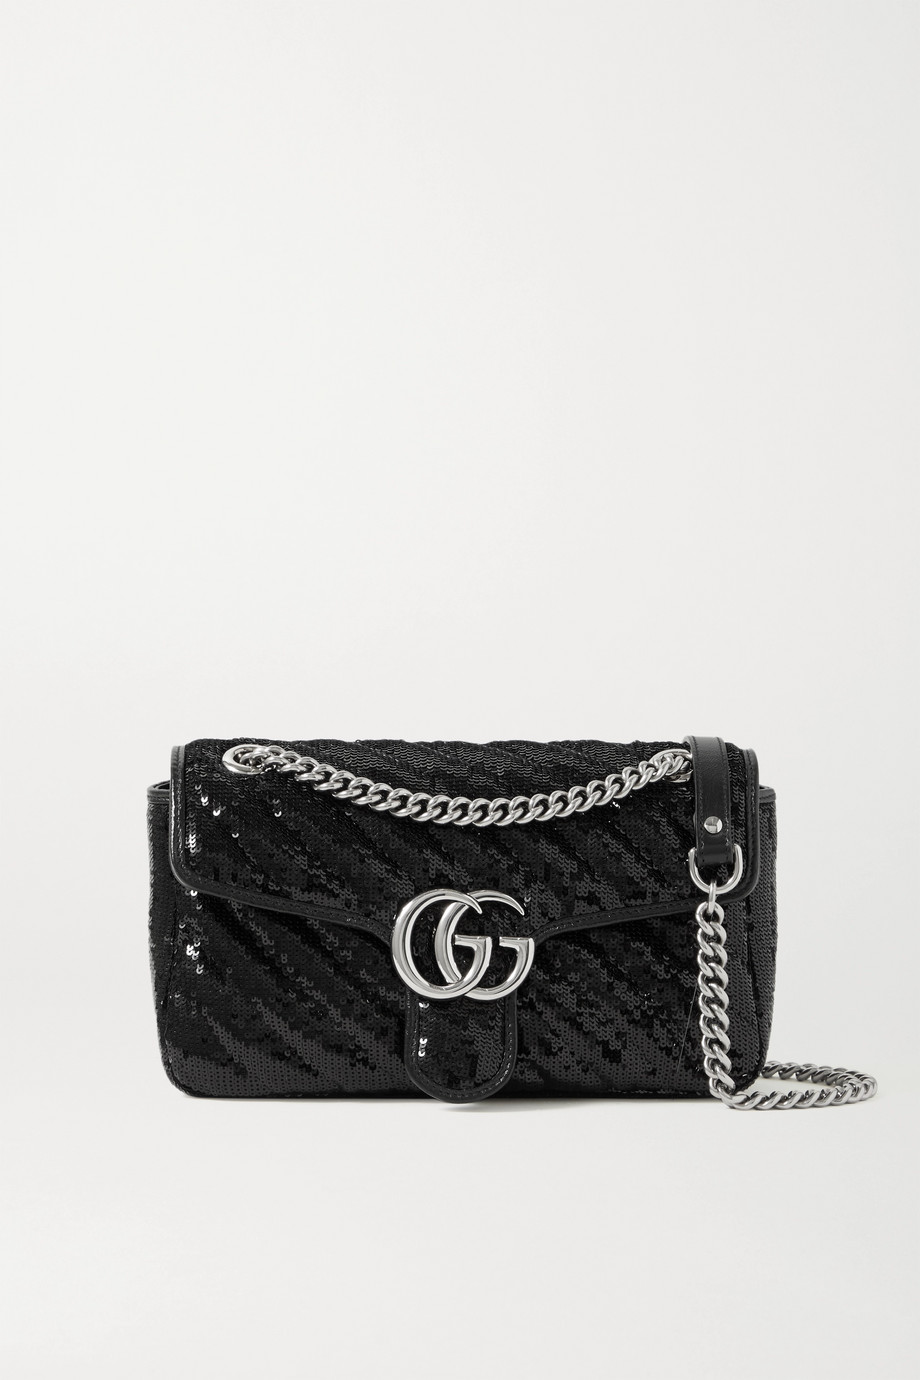 Gucci GG Marmont small sequined leather shoulder bag